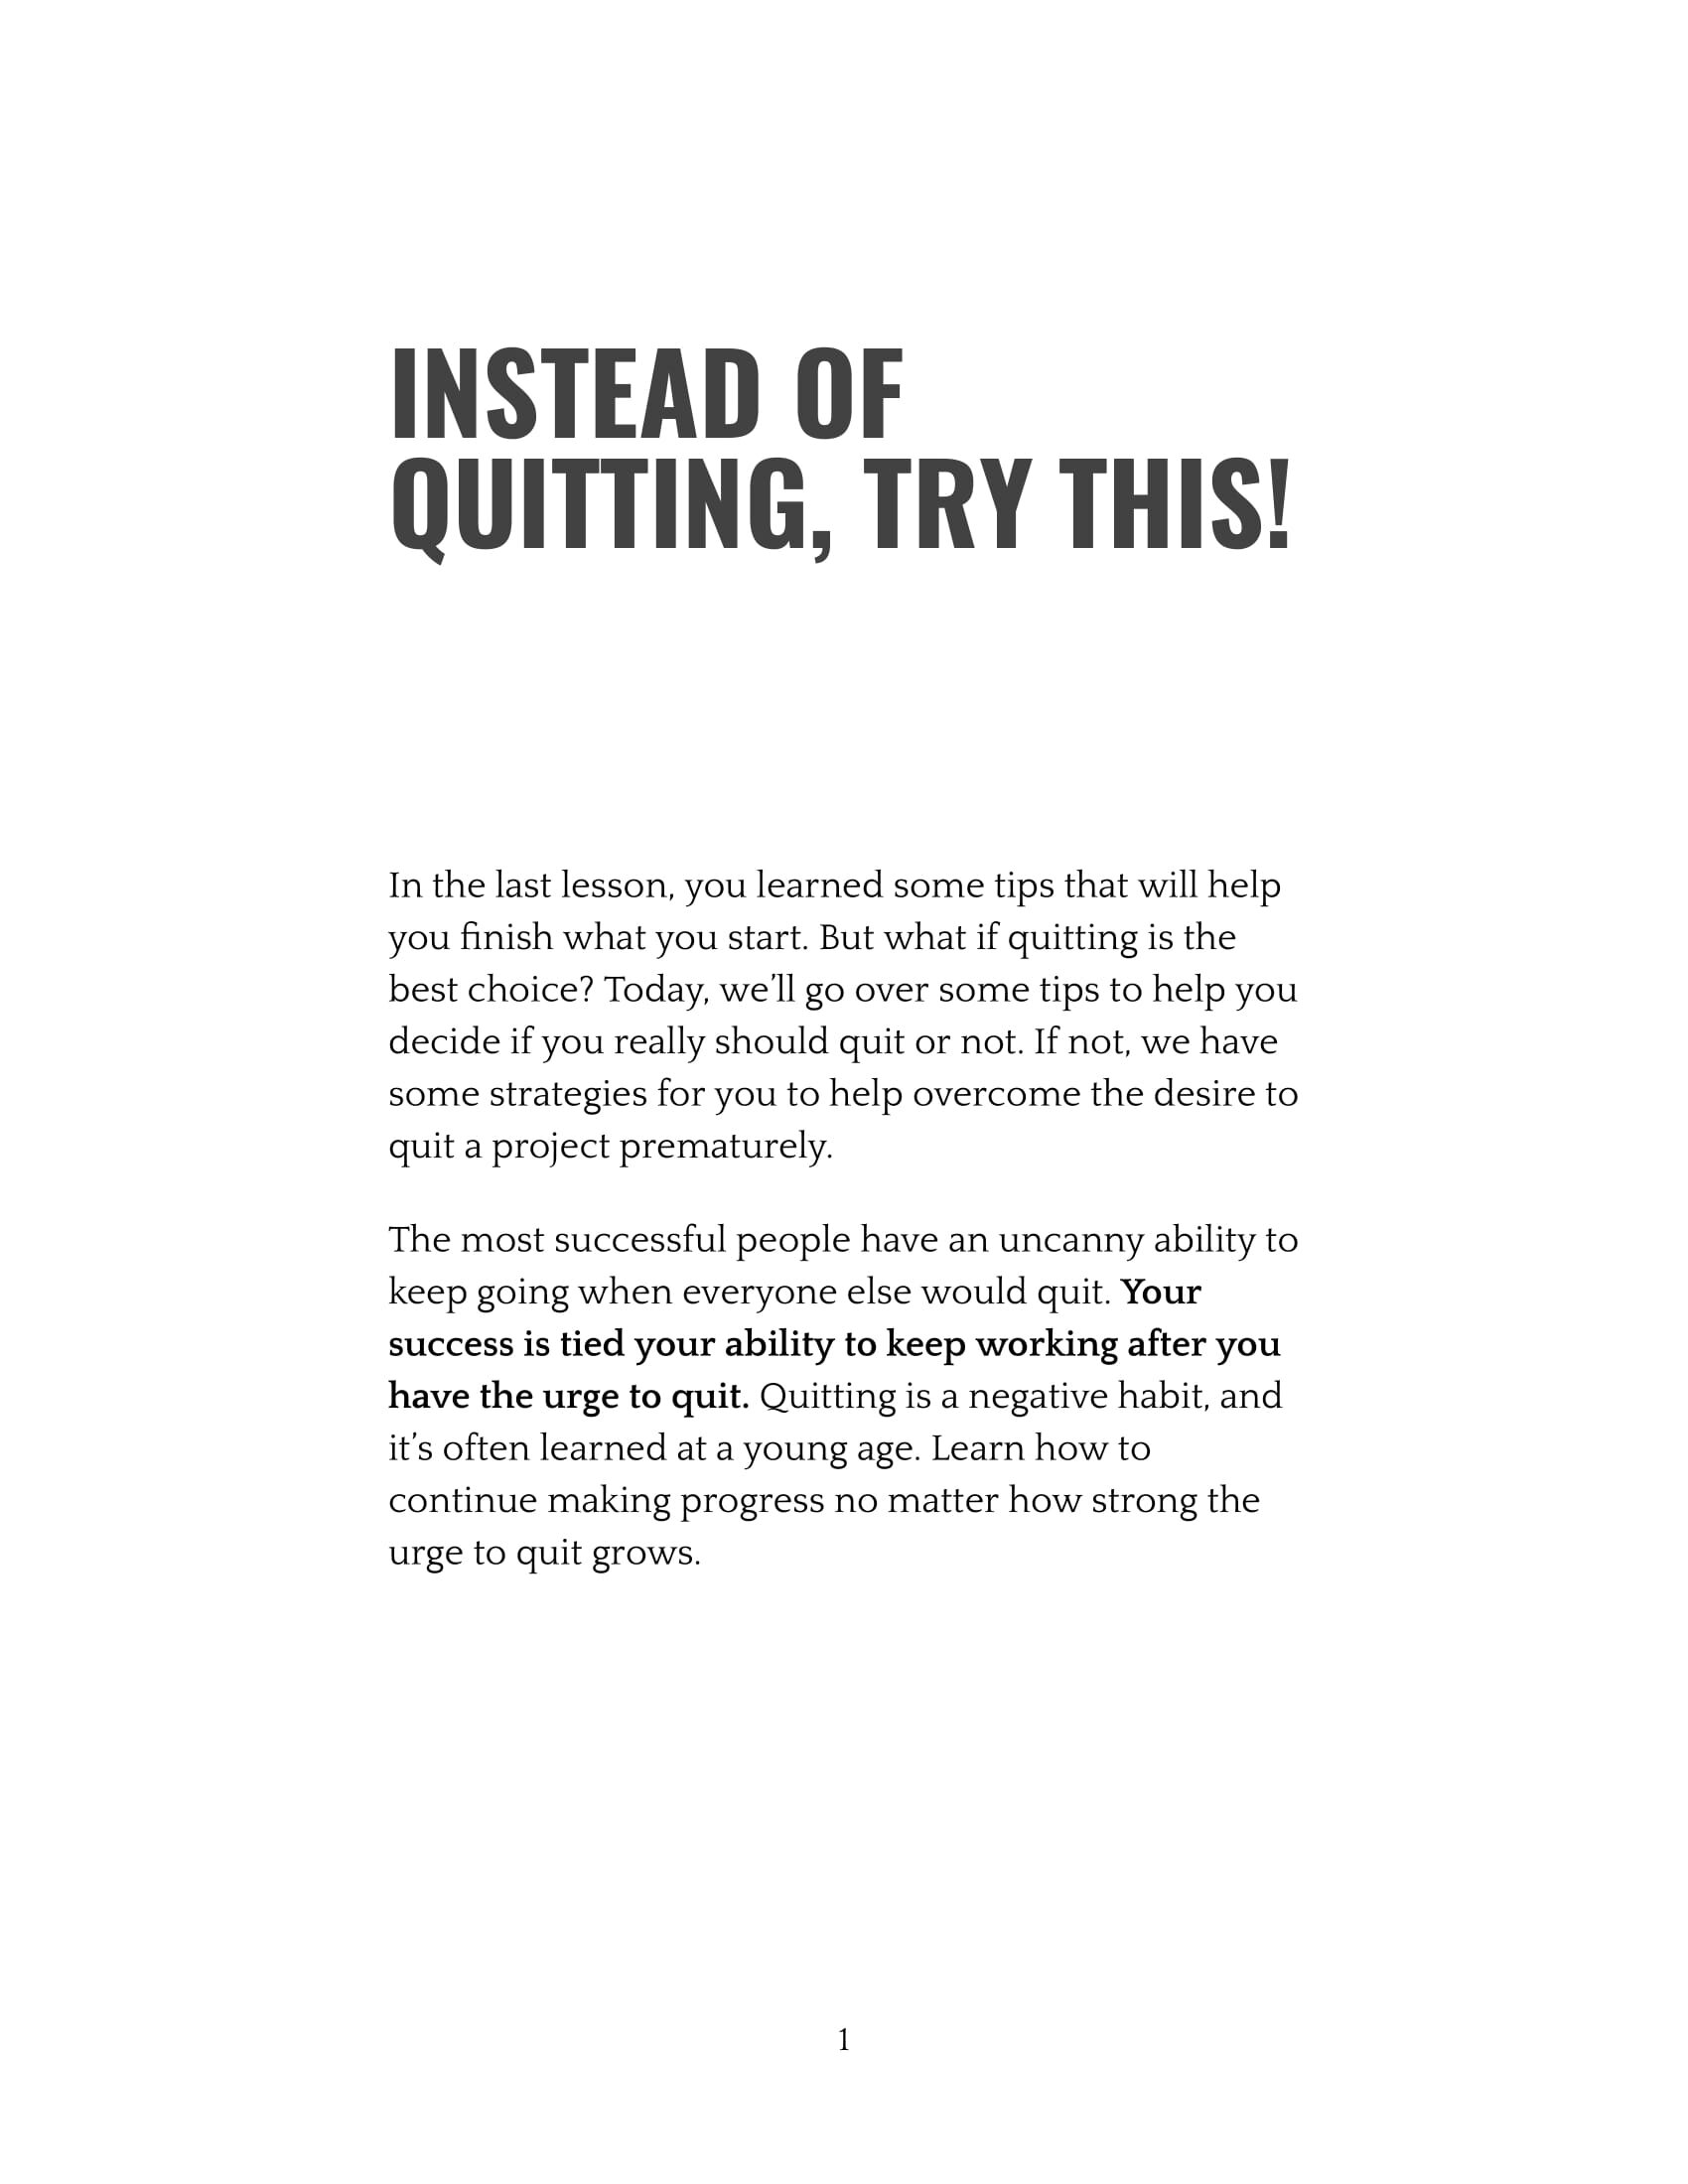 Instead Of Quitting Try This-1.jpg